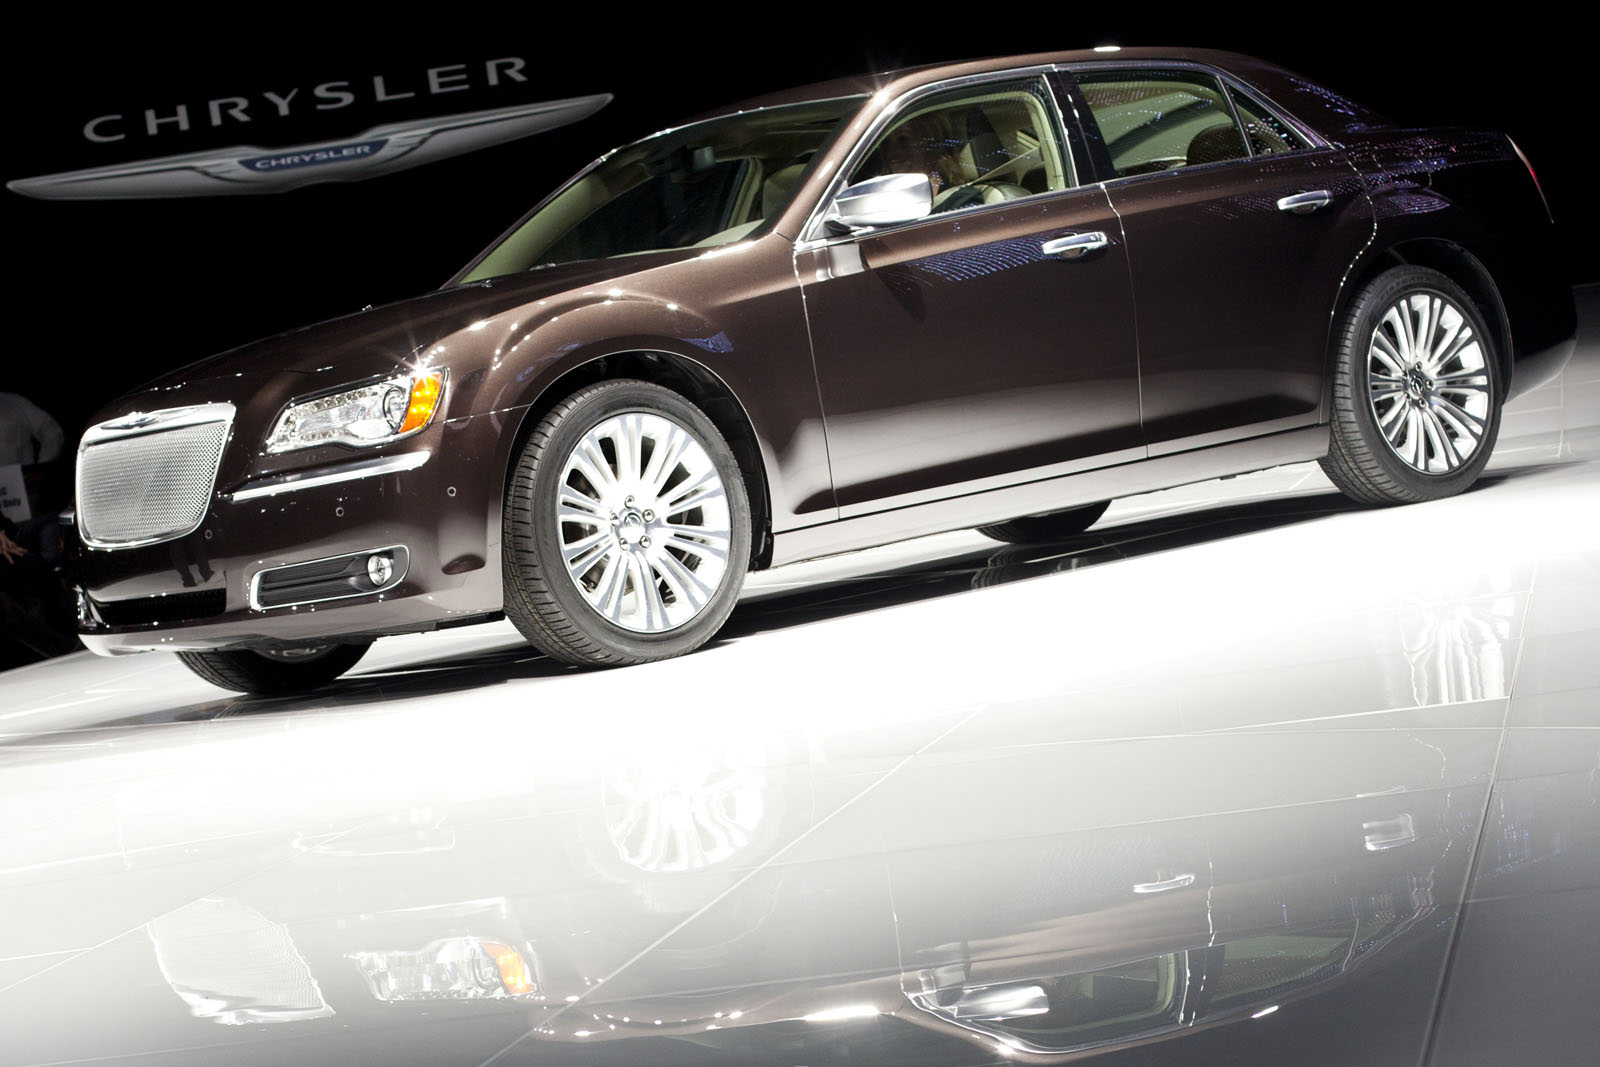 2012 Chrysler 300C Executive